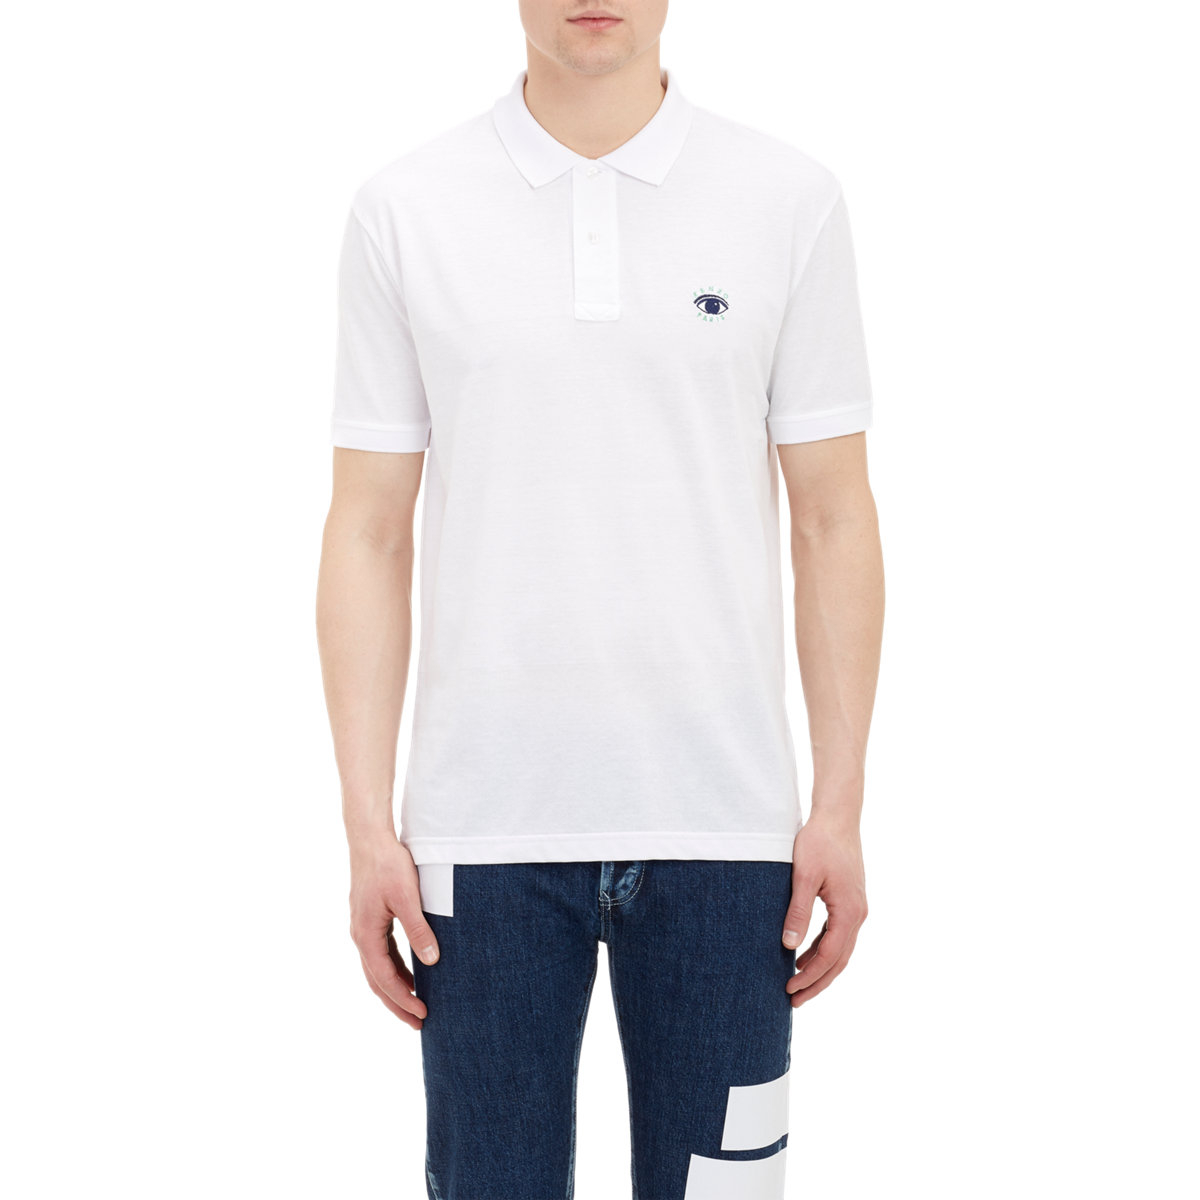 Two Tone Embroidered Polo Shirts - SIS Solutions